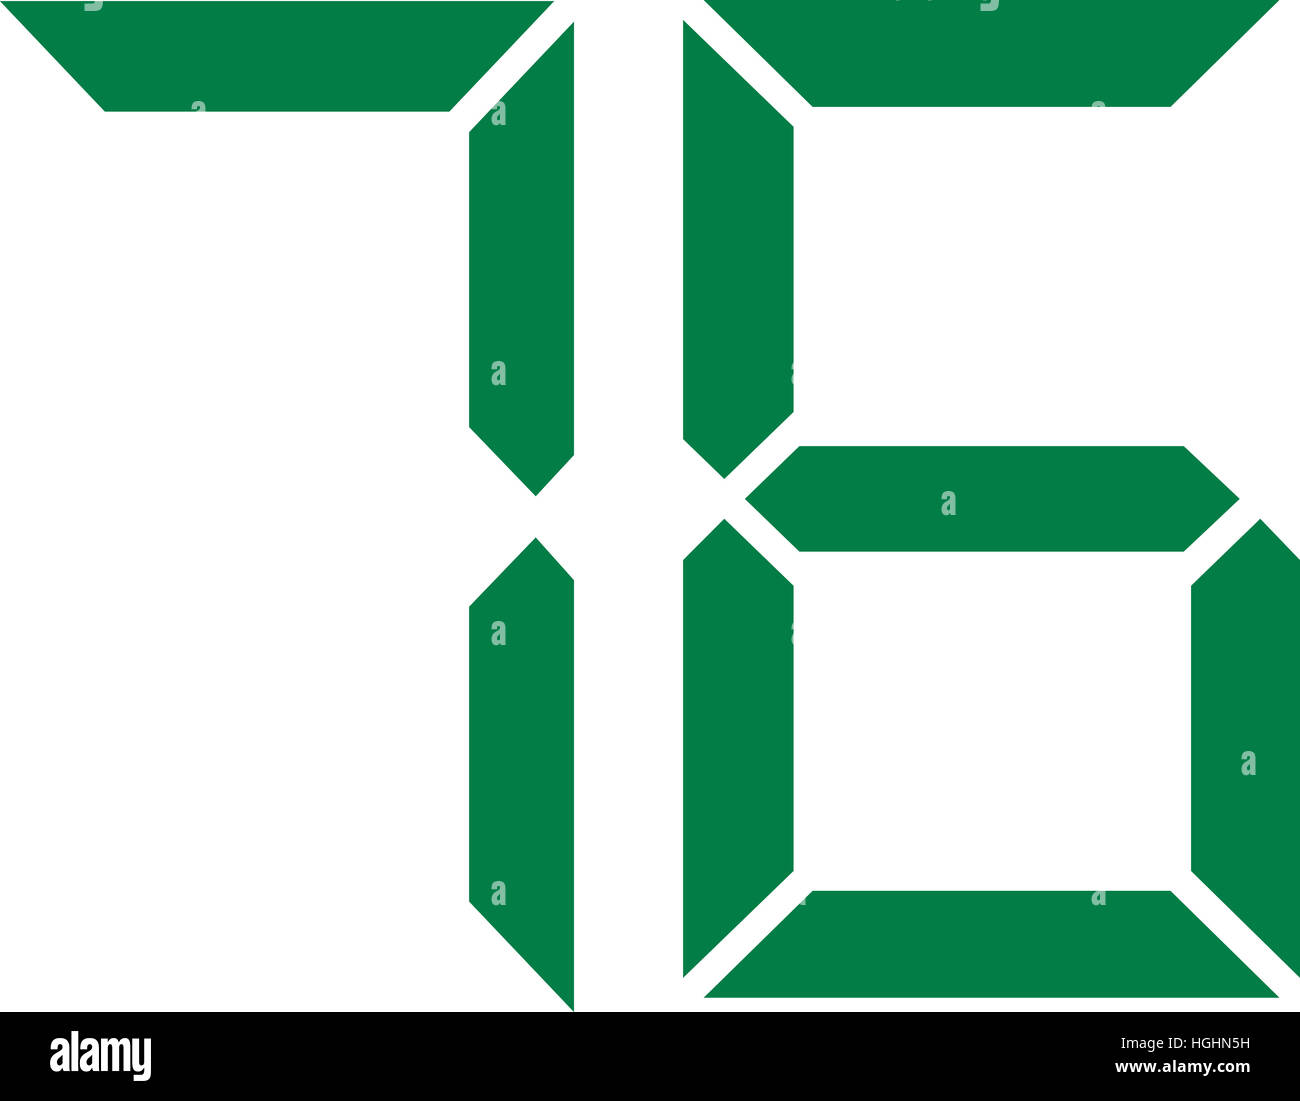 Seventy Six Digital Number 76 Stock Photo Alamy